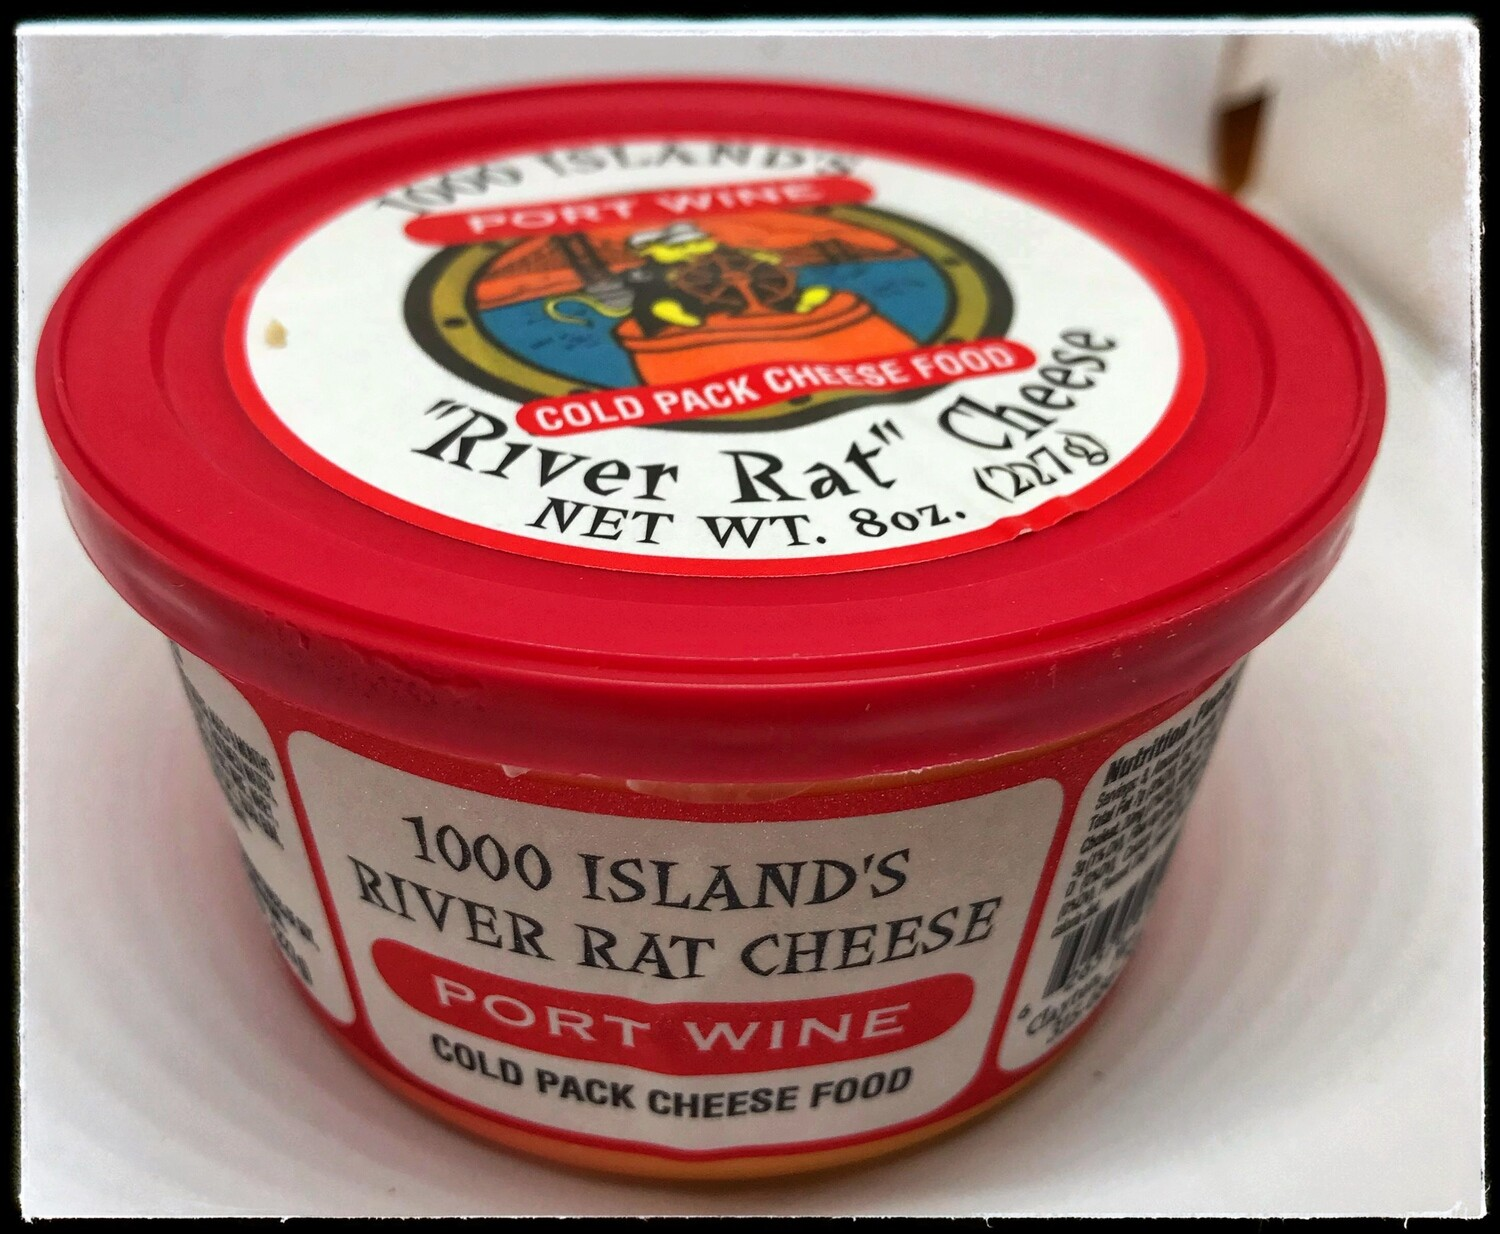 River Rat Port Wine Cheese Tub